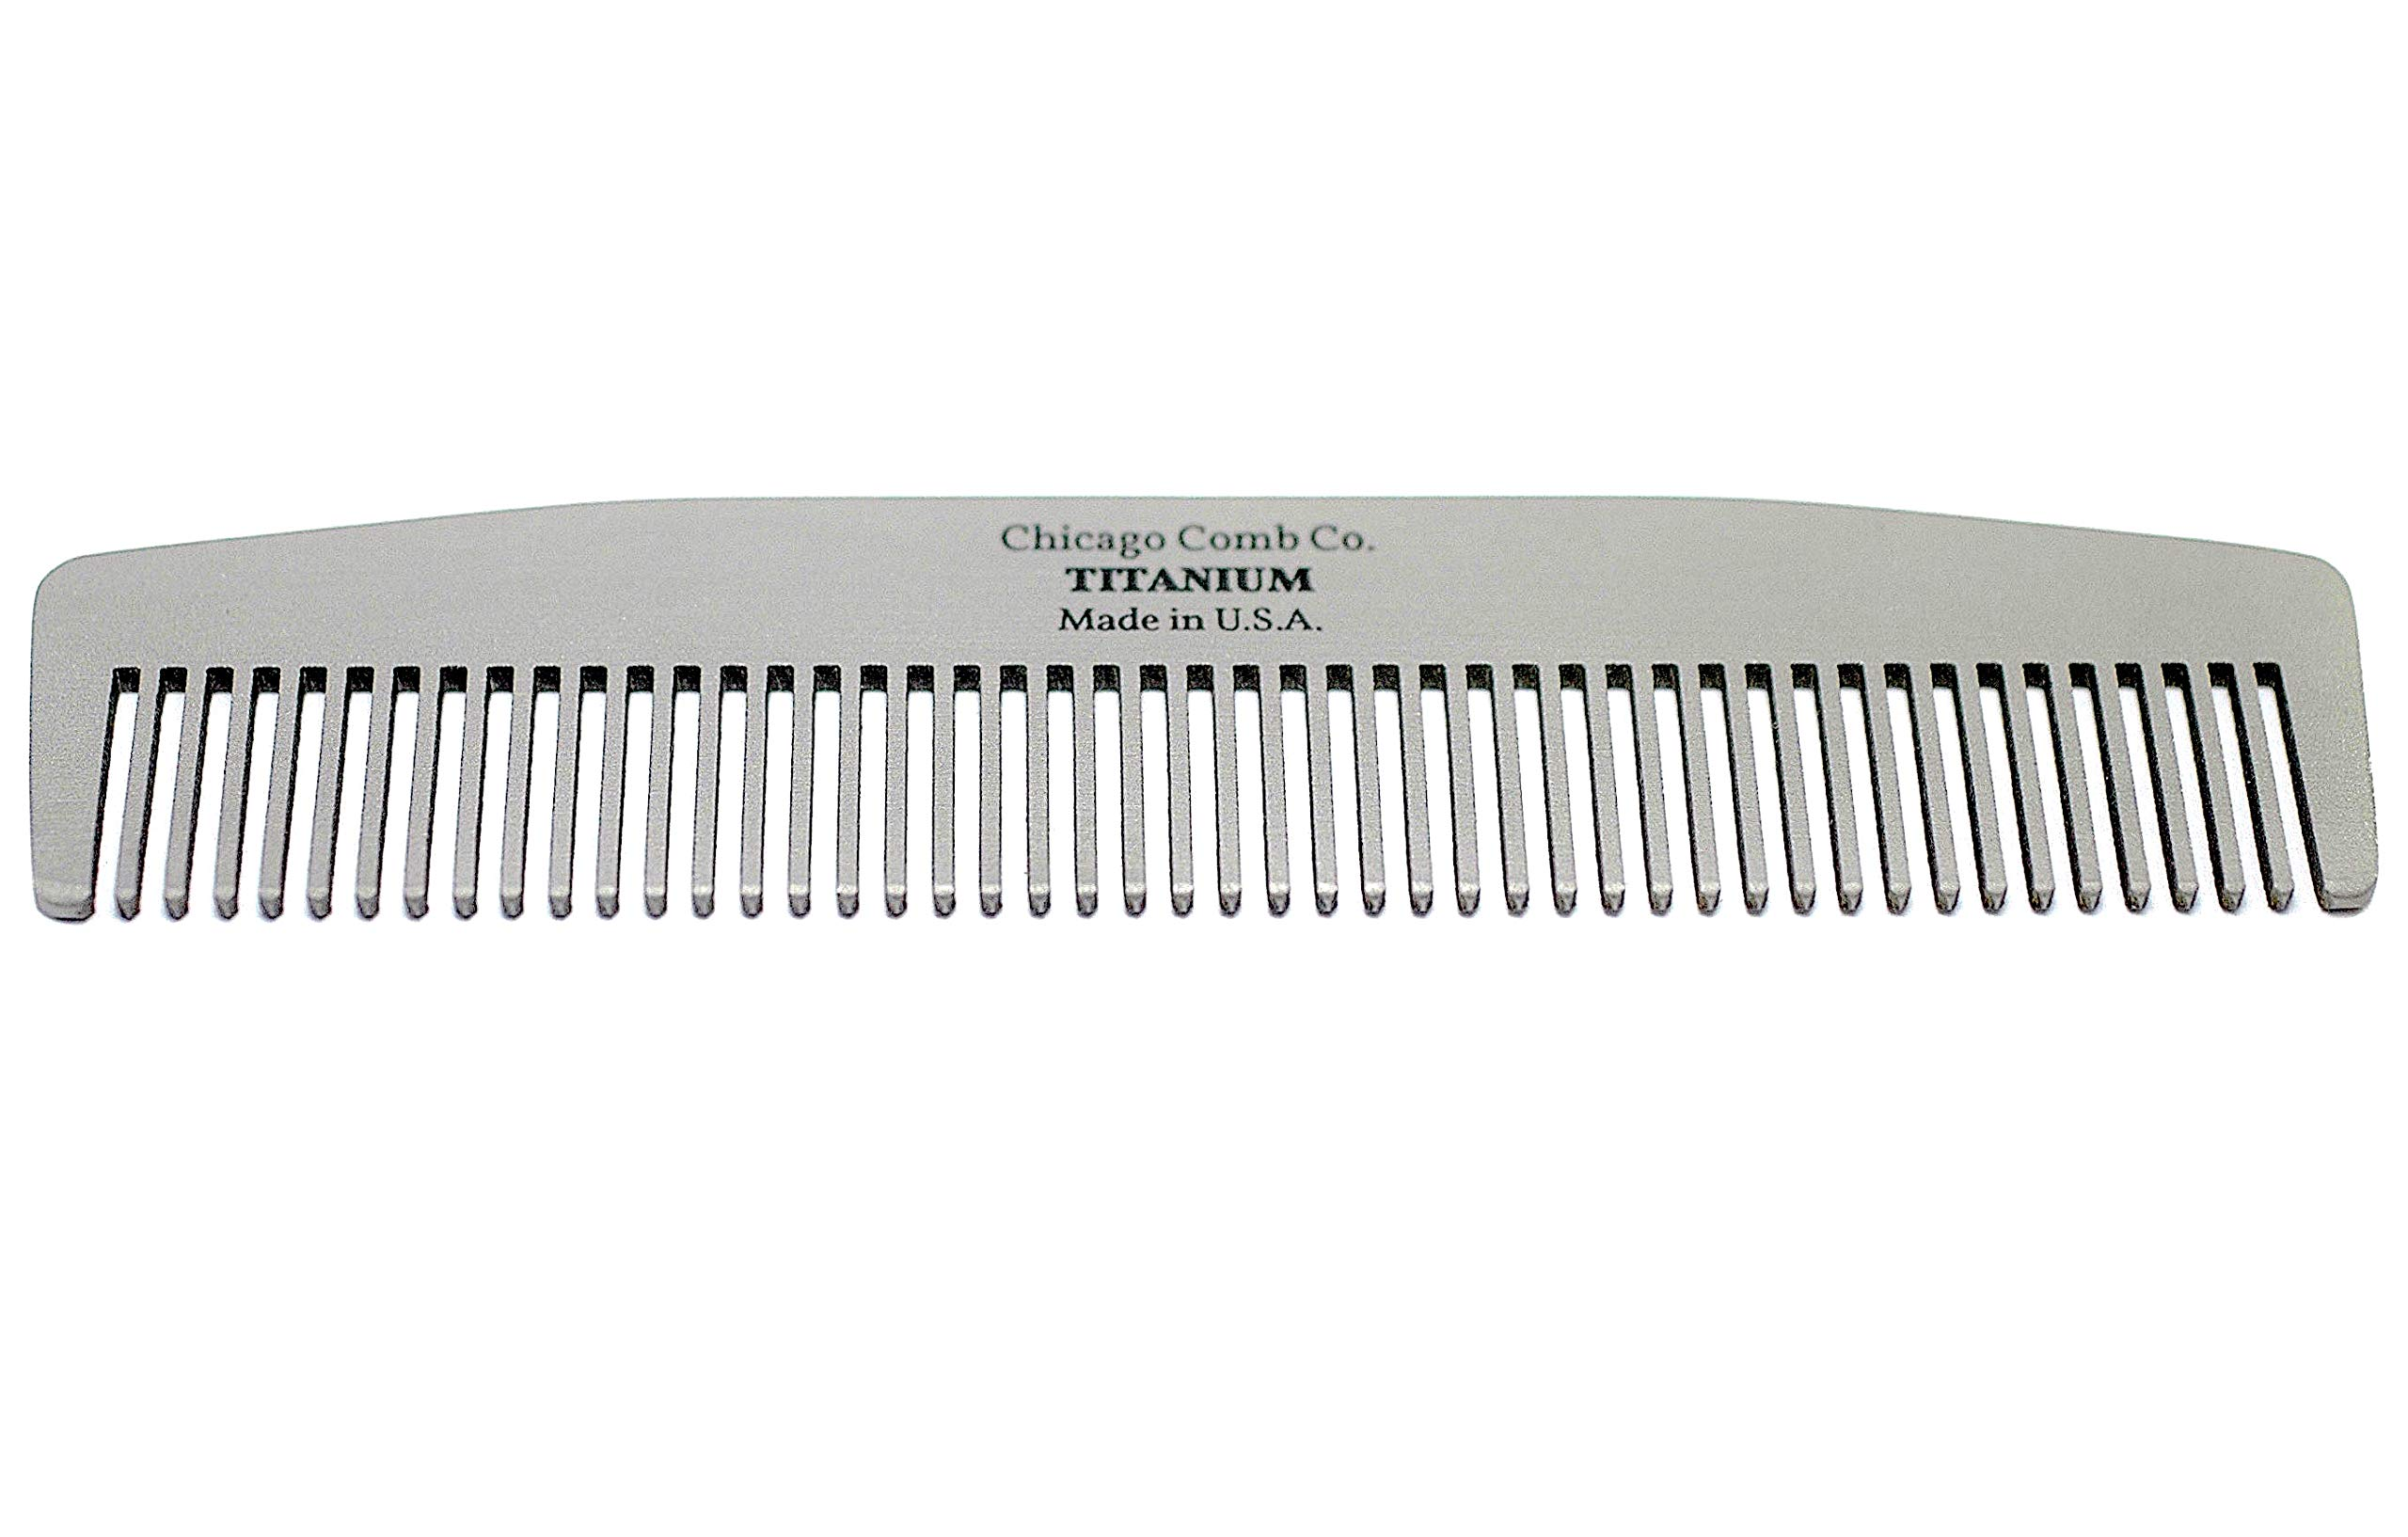 Chicago Comb Model No. 3 Titanium, Made in USA, Ultra-Smooth, Strong, Light, Anti-Static, 5.5 in. (14 cm) Long, Medium-Fine Tines, Ultimate Daily Use, Pocket, Travel Comb, Pure American Titanium by Chicago Comb